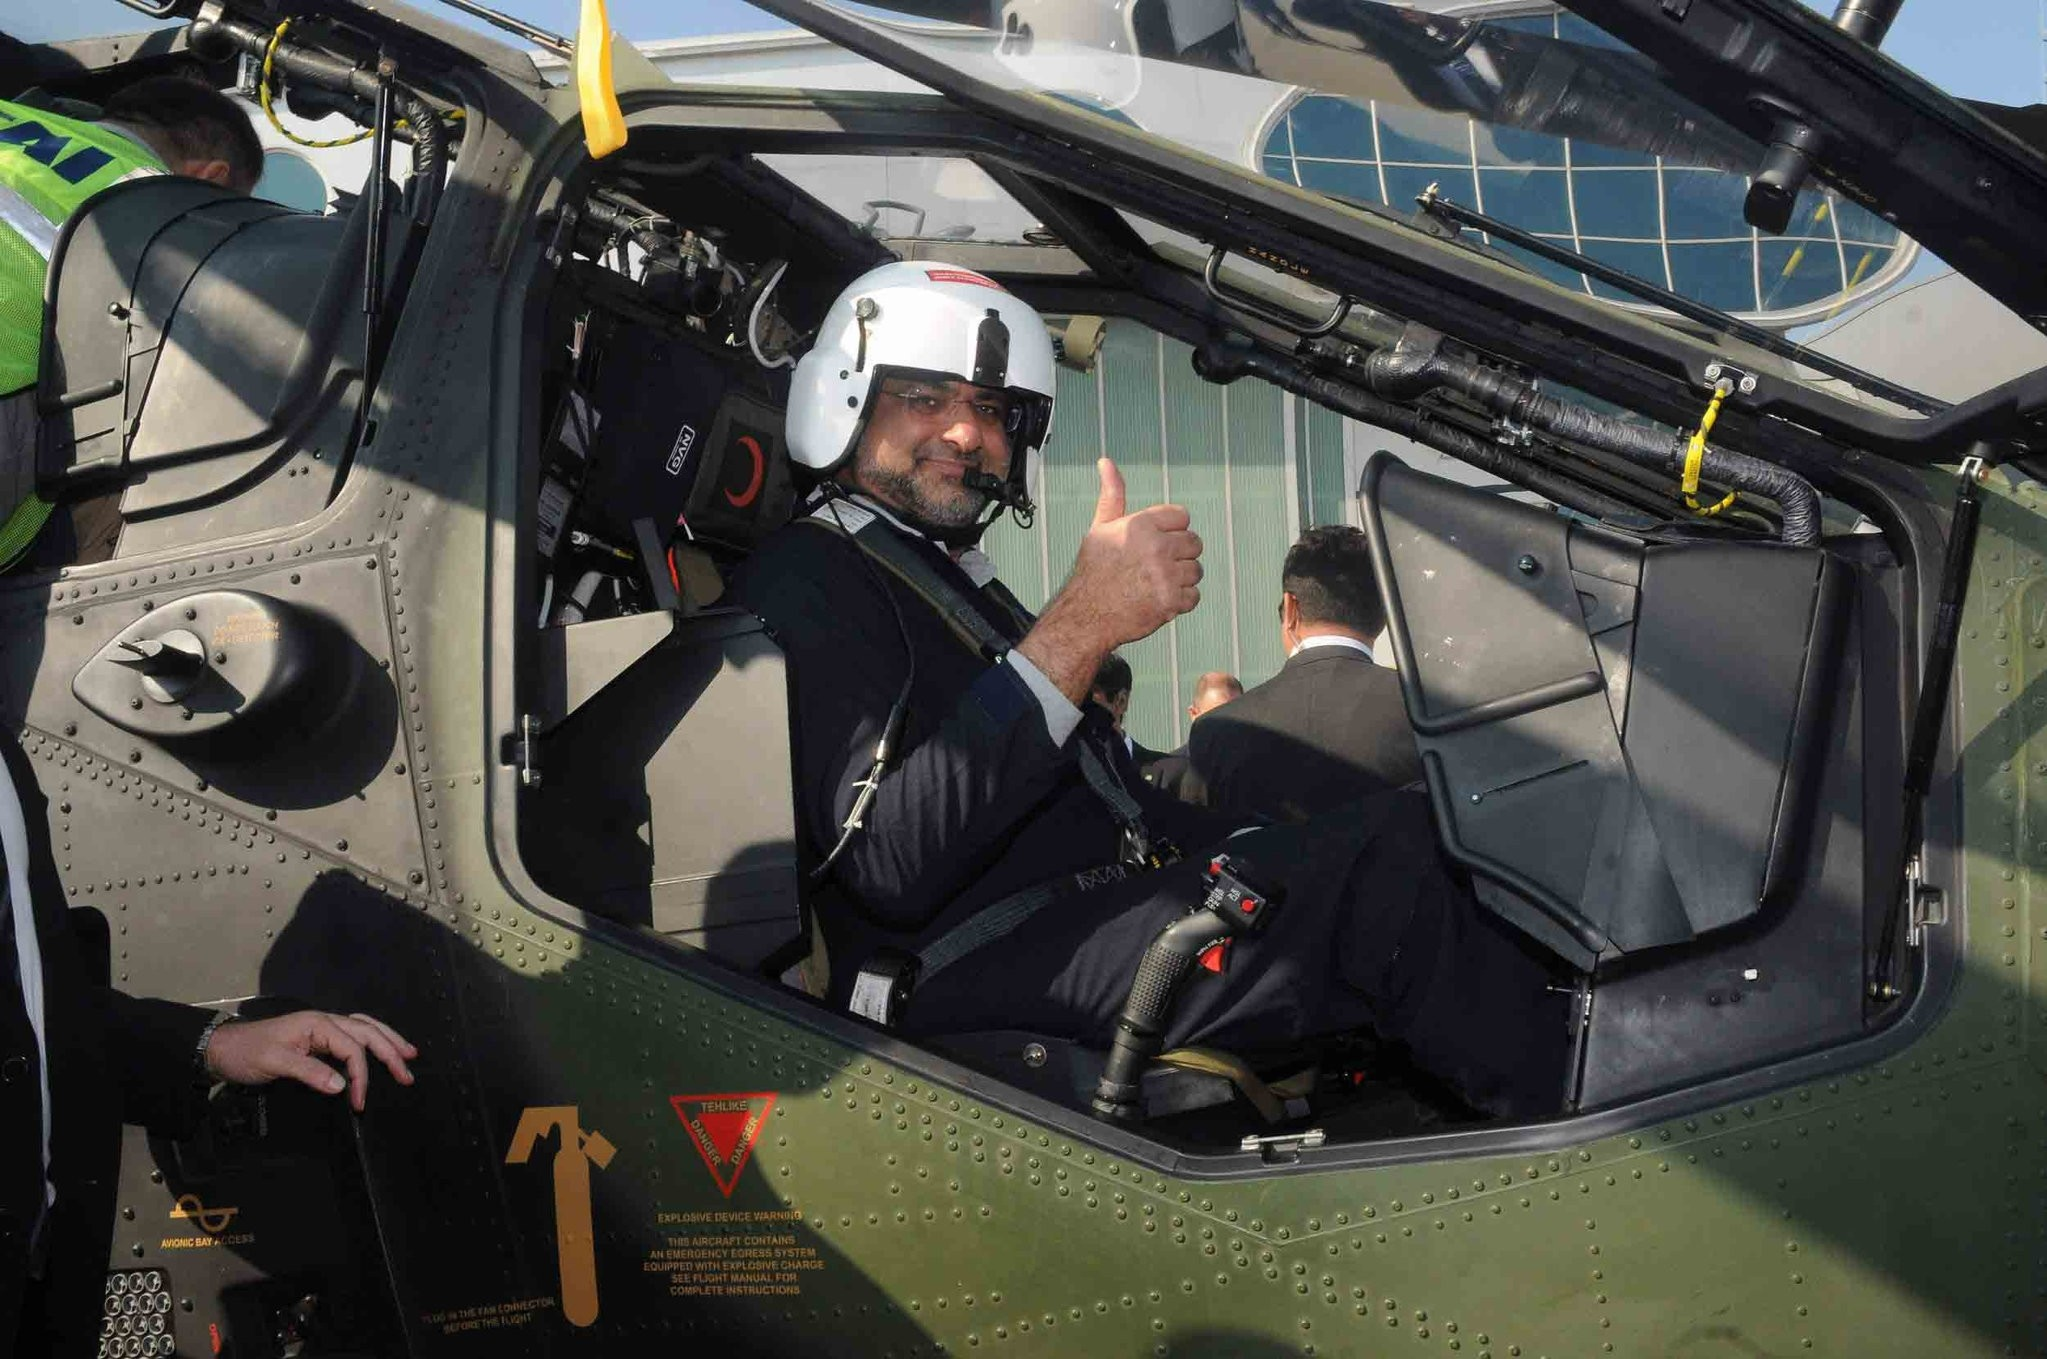 Pakistani Prime Minister Shahid Khaqan Abbasi previously tested a T129 ATAK helicopter and appreciated its impressive qualities.